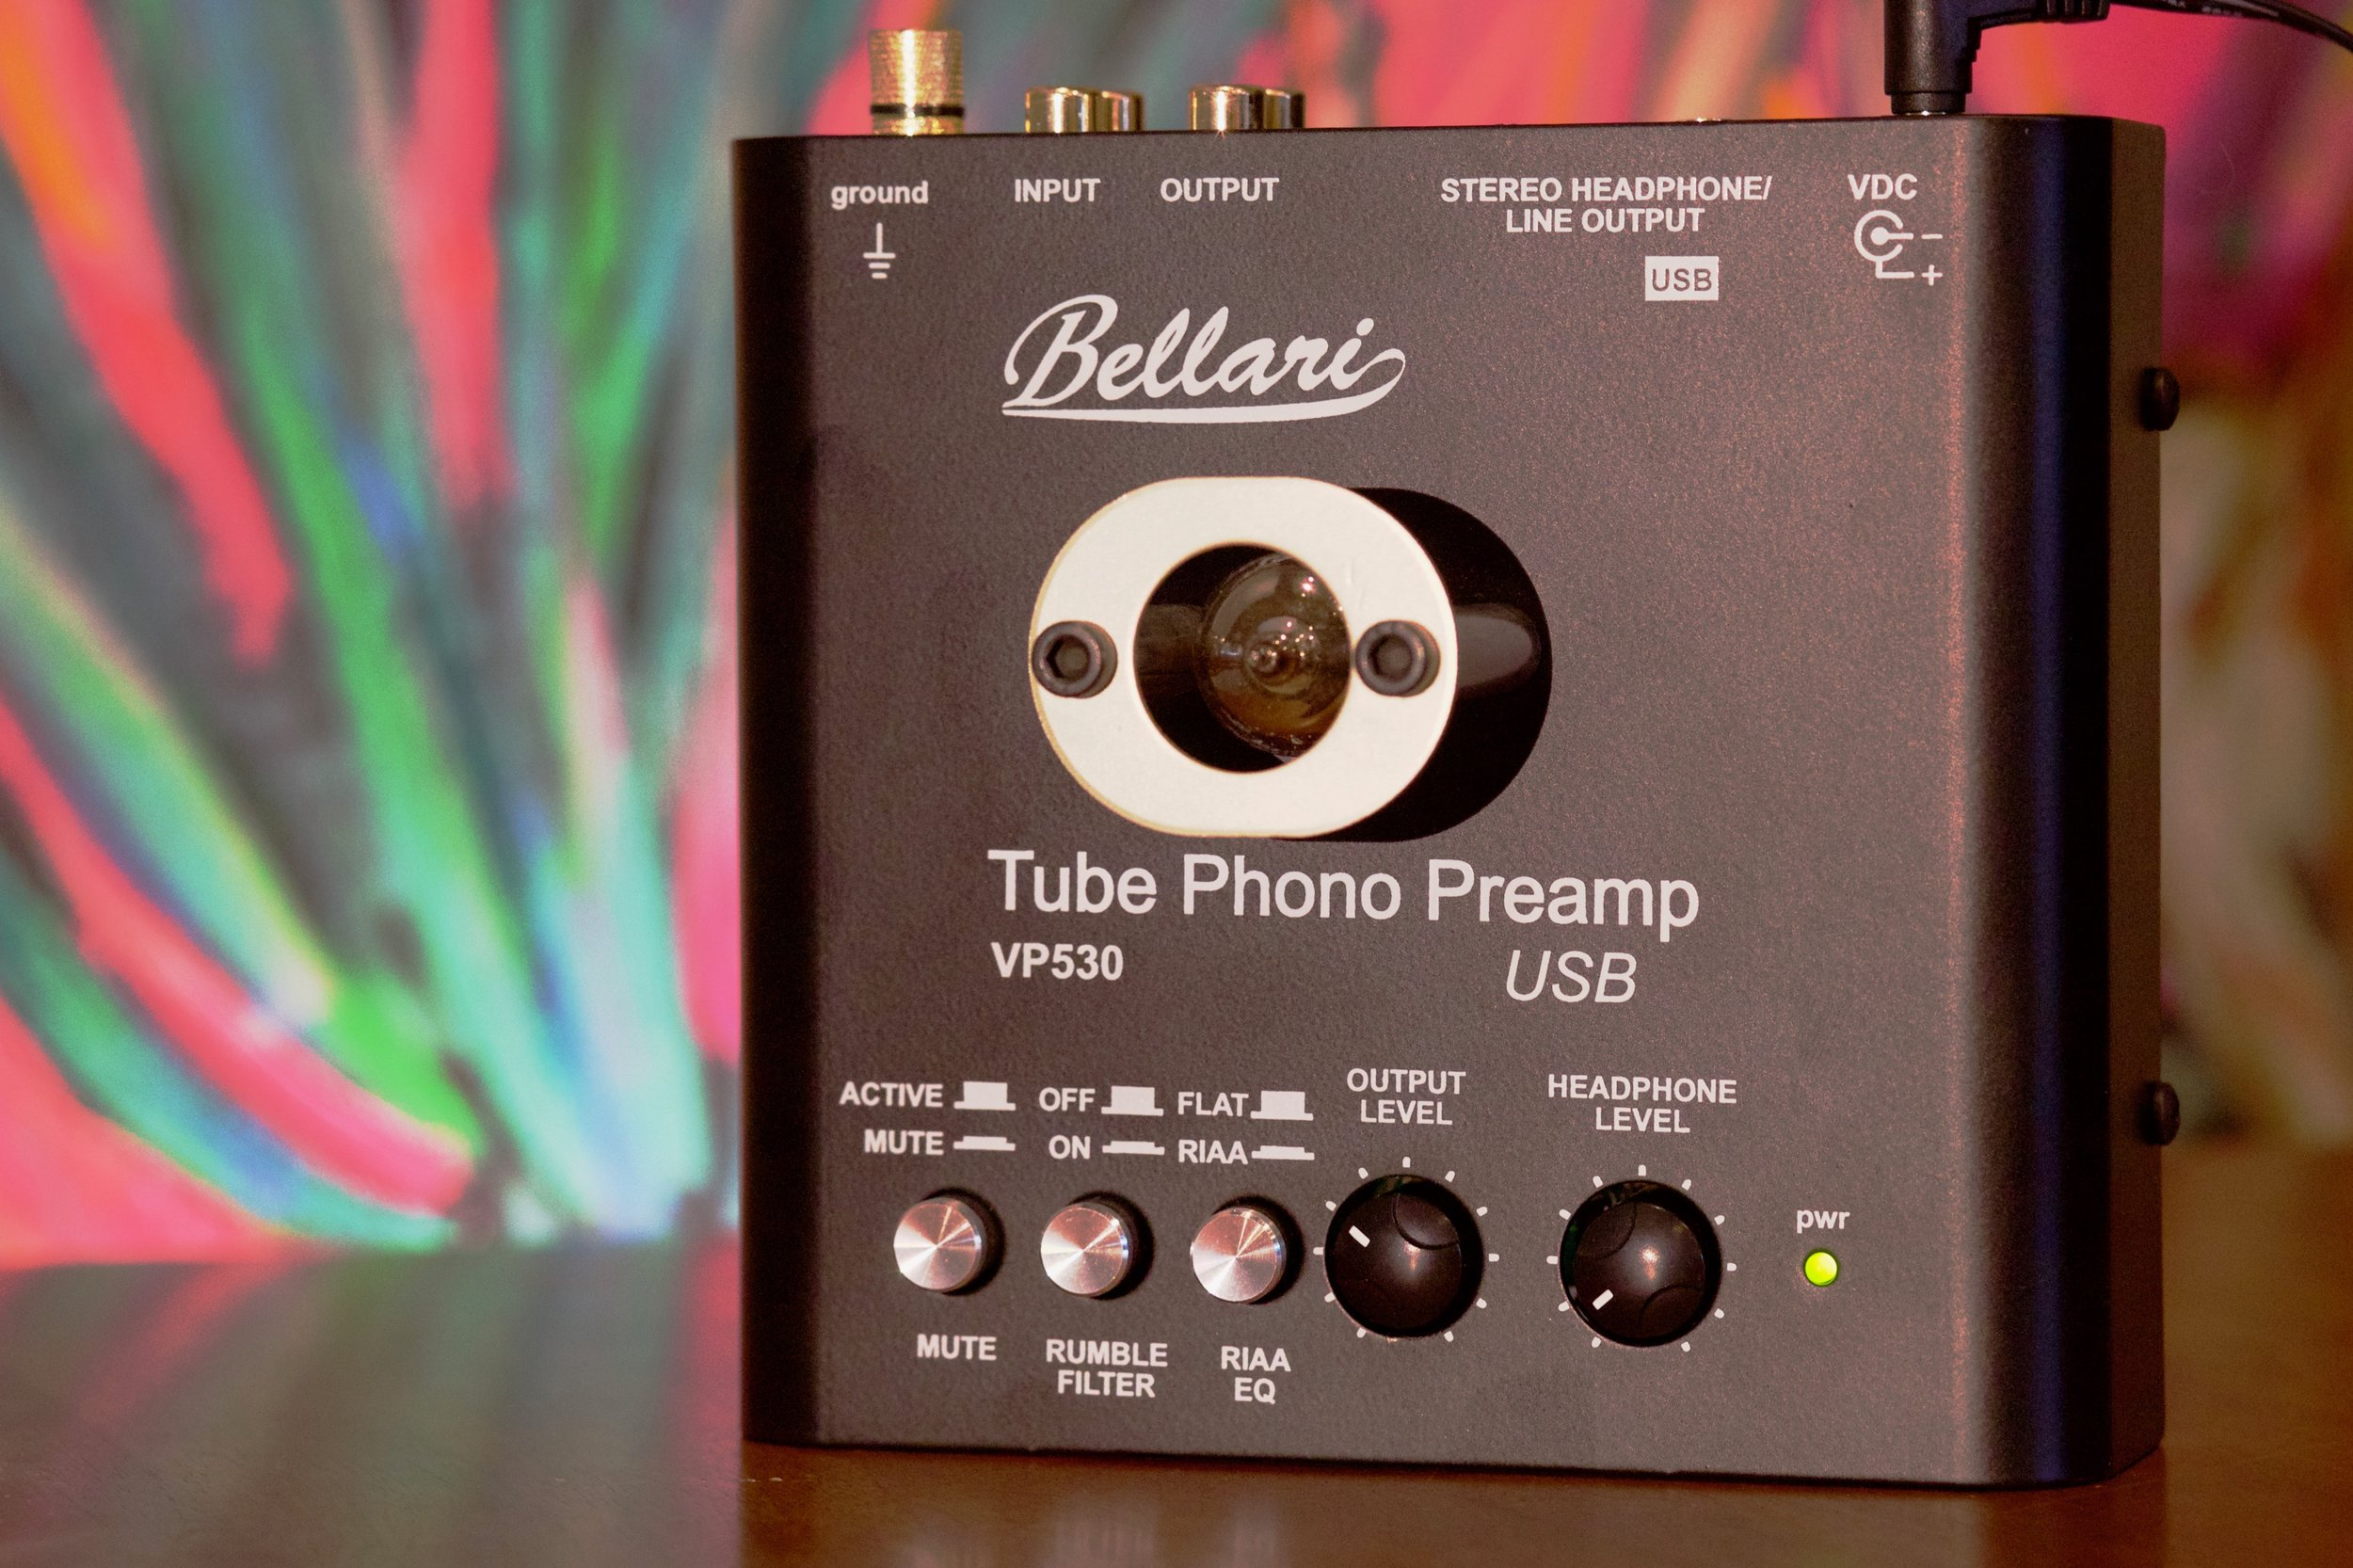 Bellari VP350 tube phono preamp w/ built-in A to D converter   Vacuum tube phono preamp w/ USB output and built in headphone amp   Sold